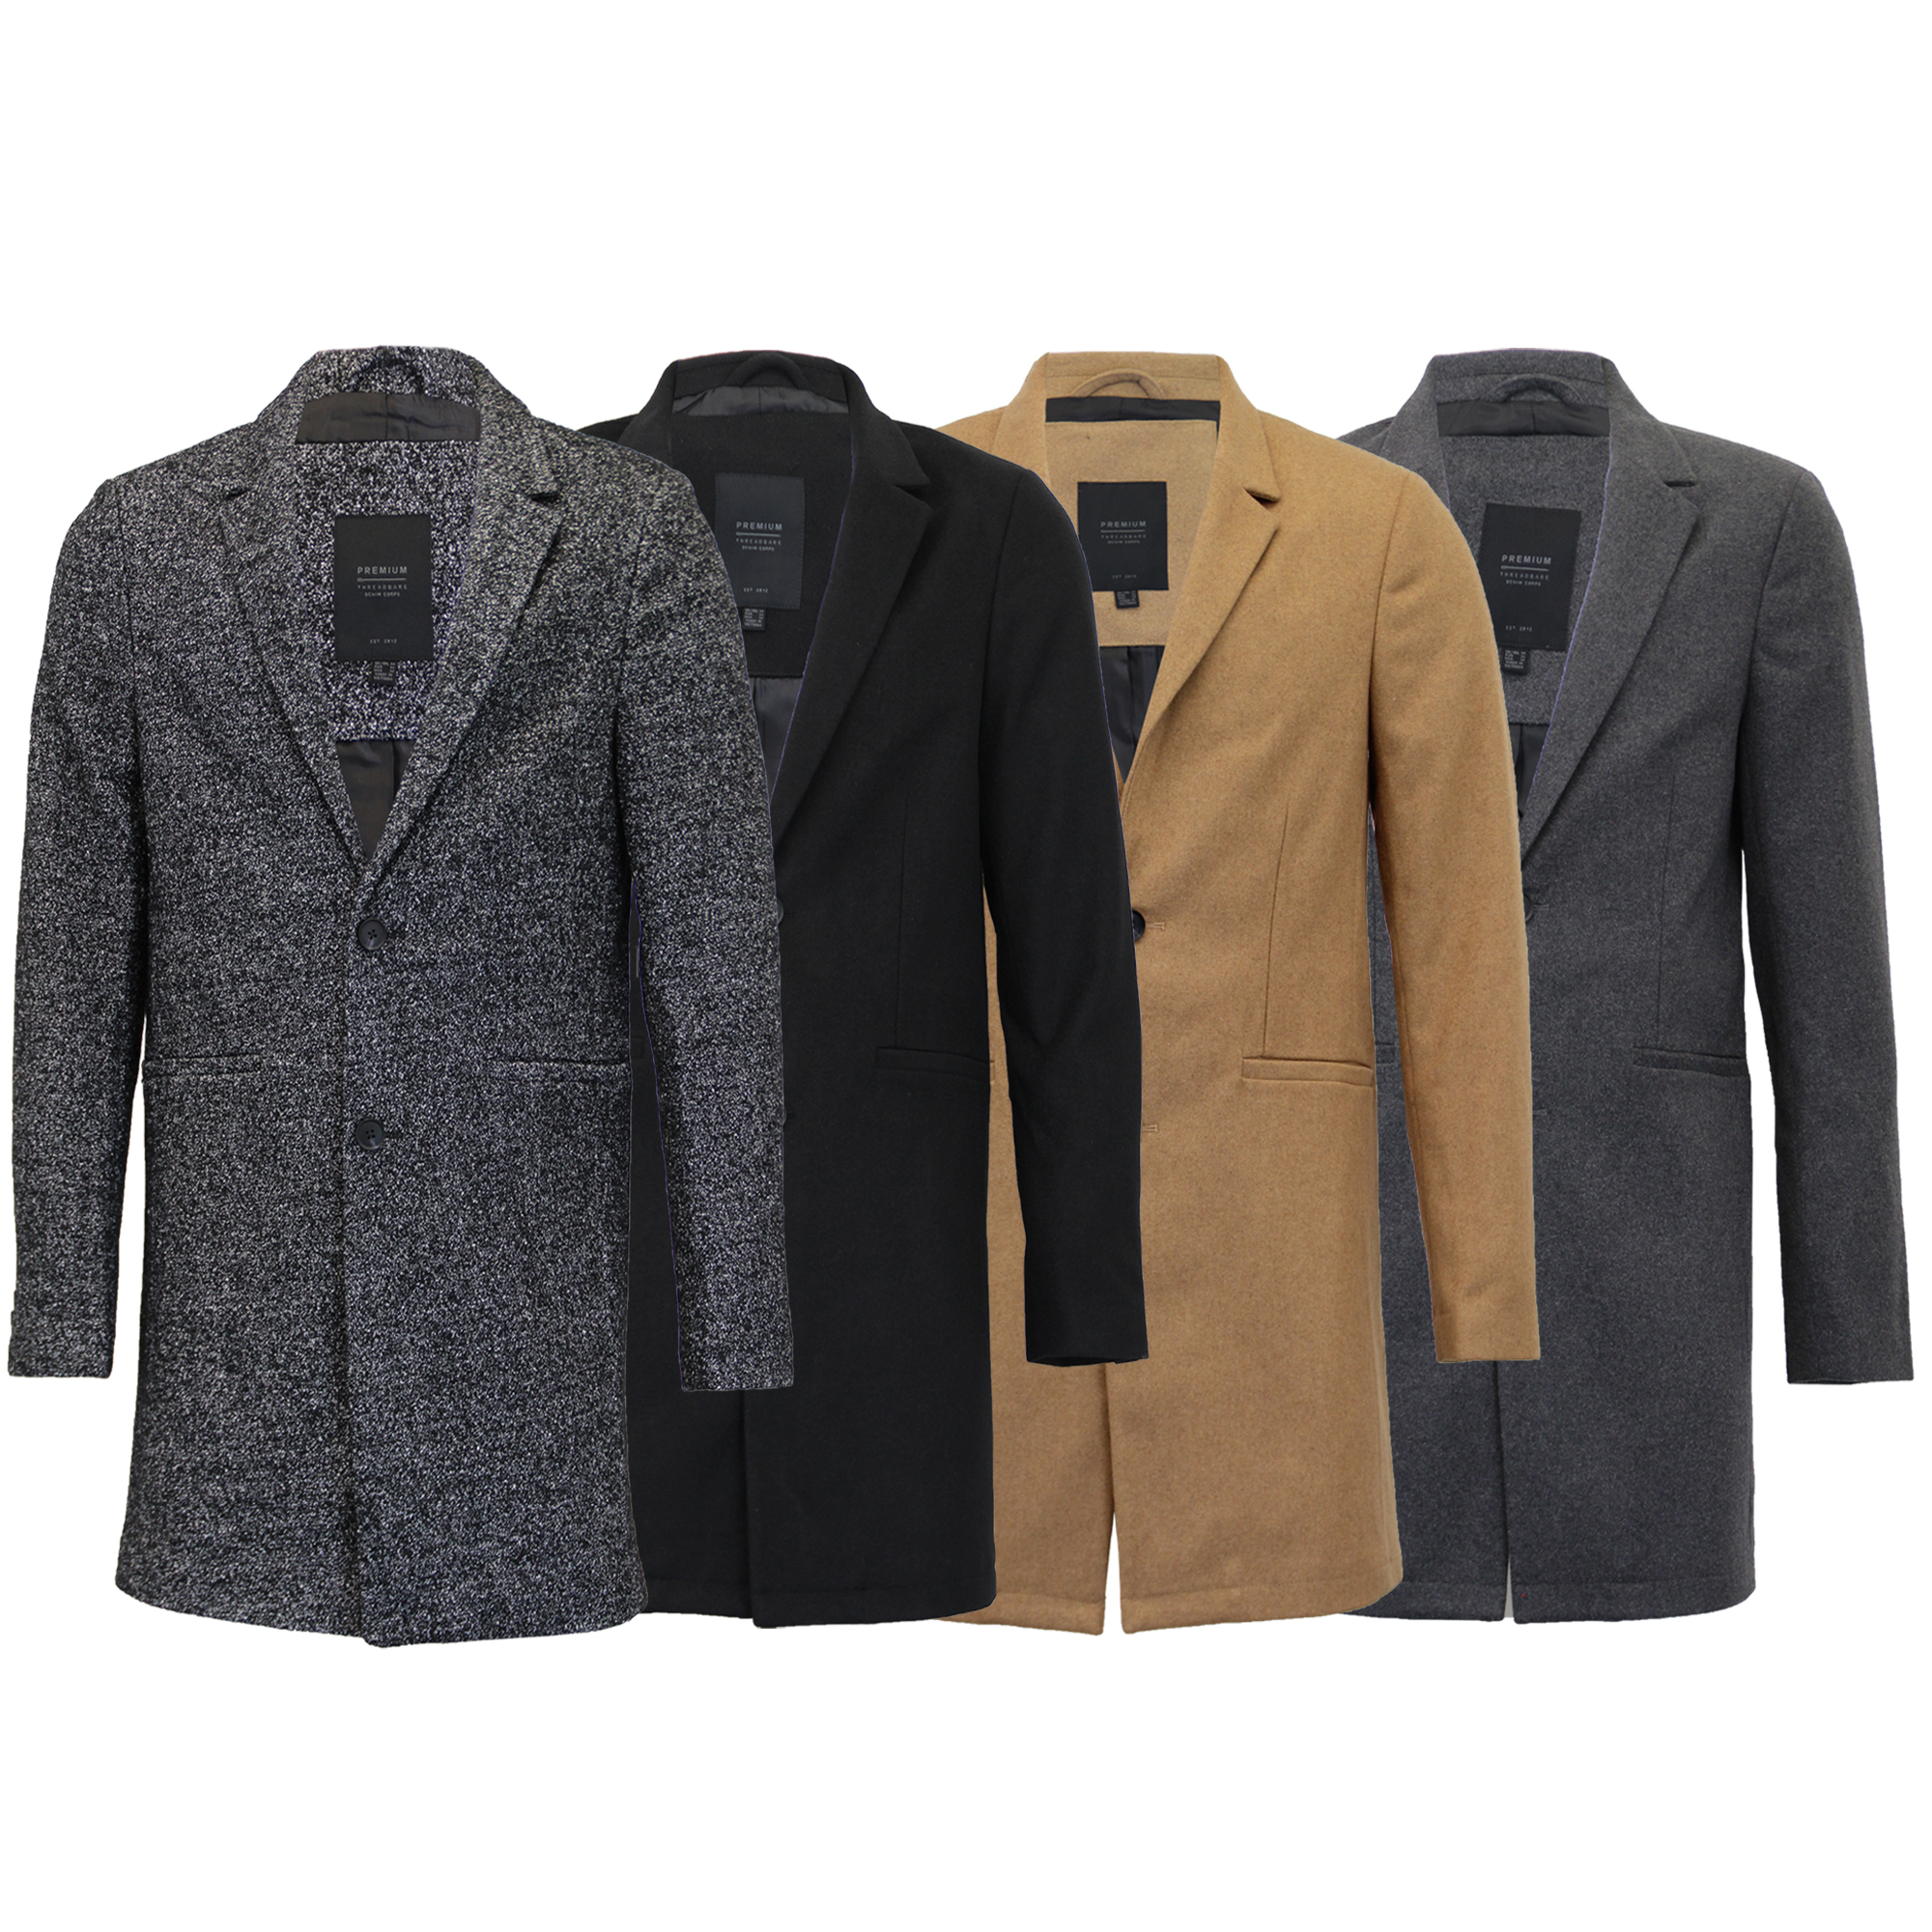 Mens Wool Mix Jacket Threadbare Long Trench Coat Collared Button